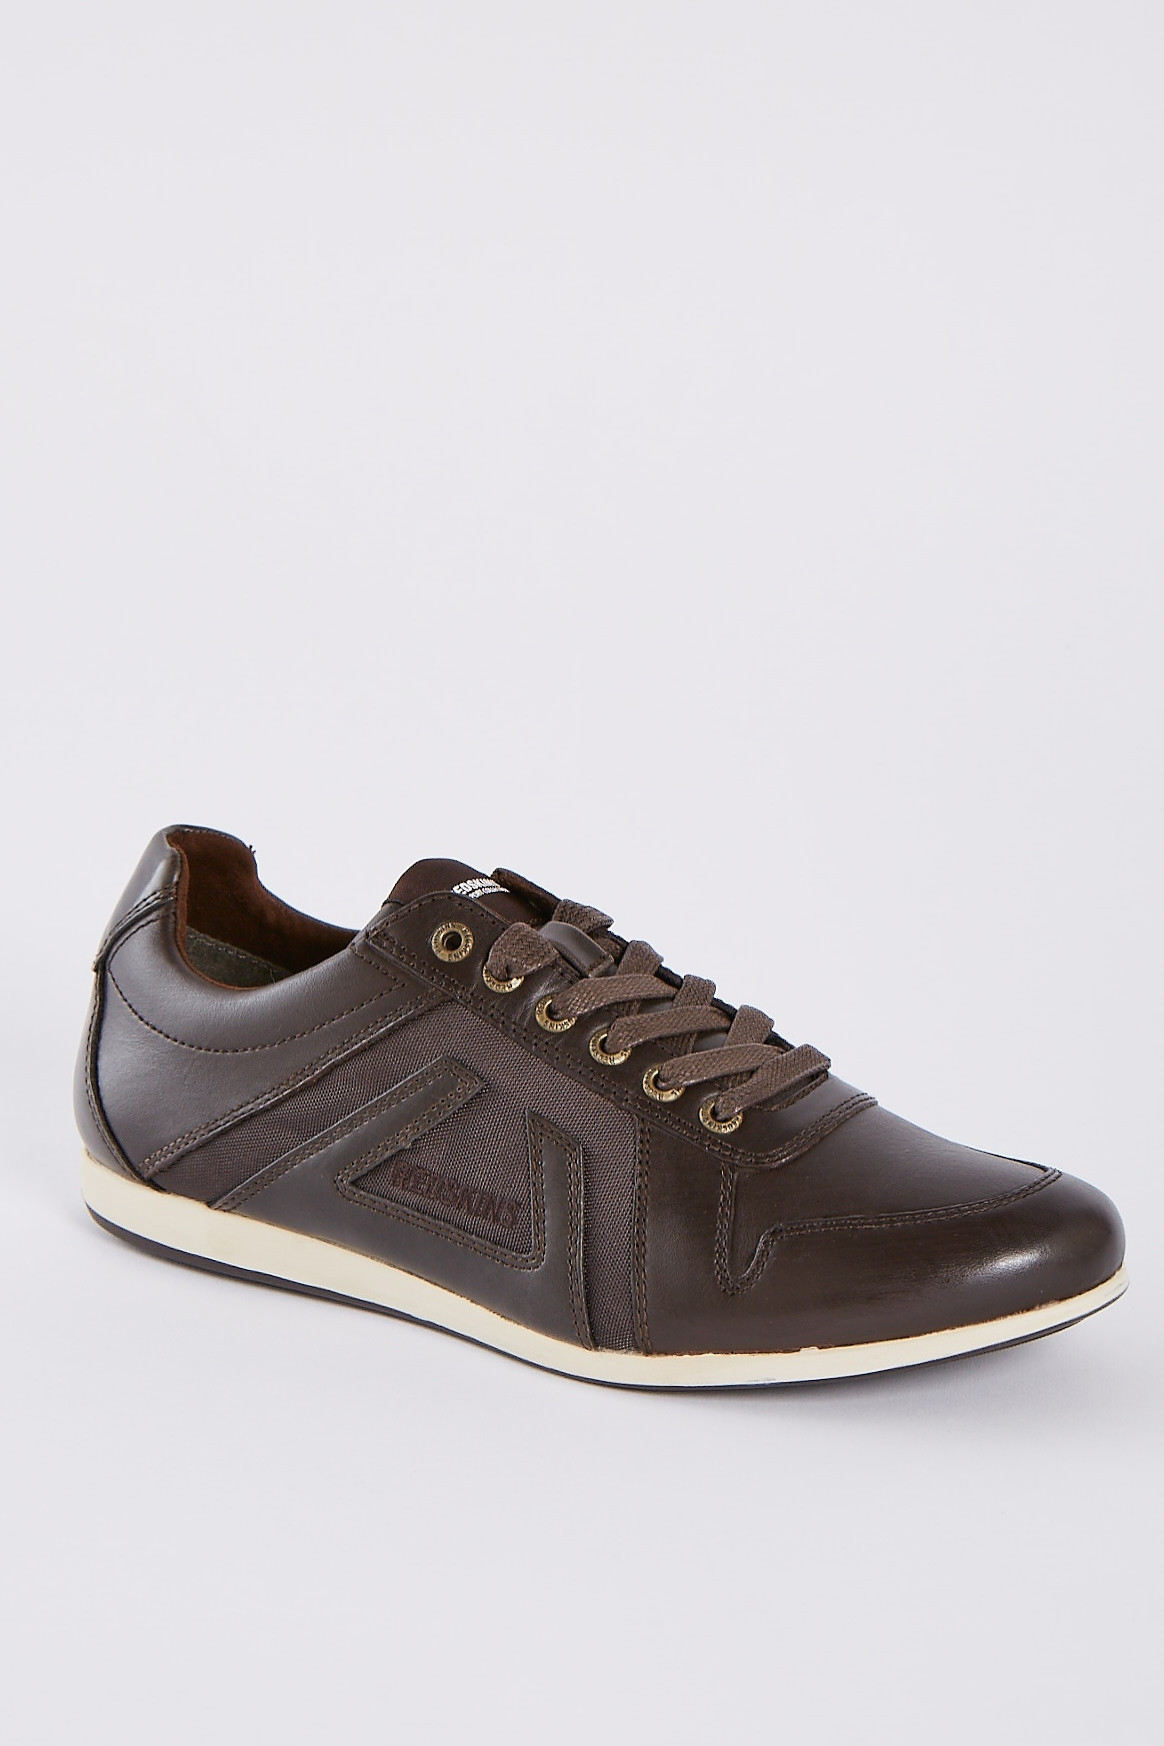 Chaussures Redskins Chaussures Breb pour homme